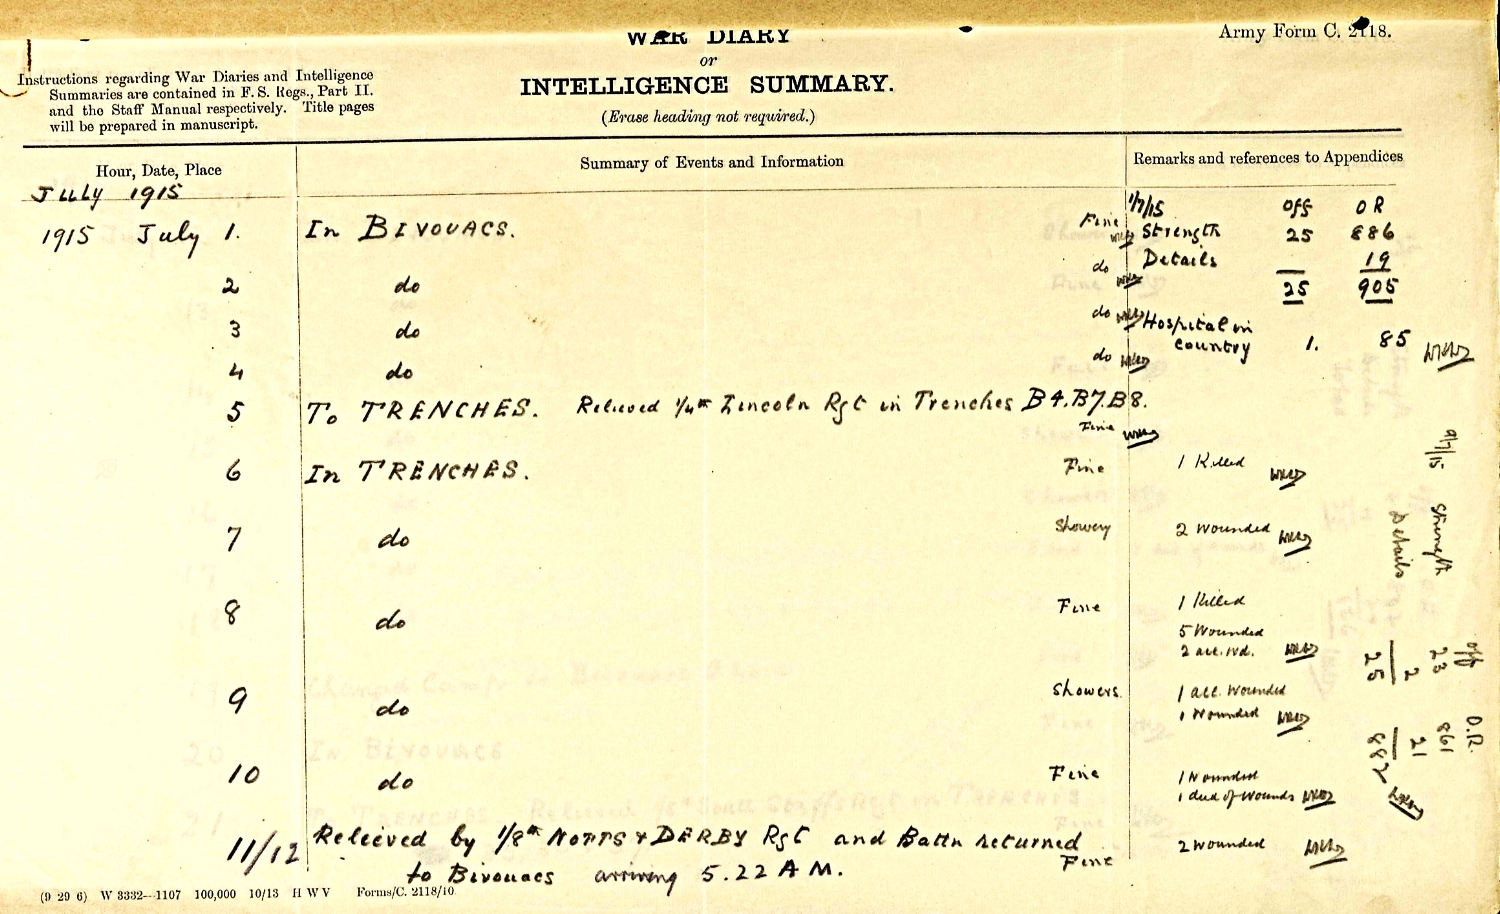 Extract from the War Diary for July 1915 of the 1/6th Battalion North Staffordshire Regiment